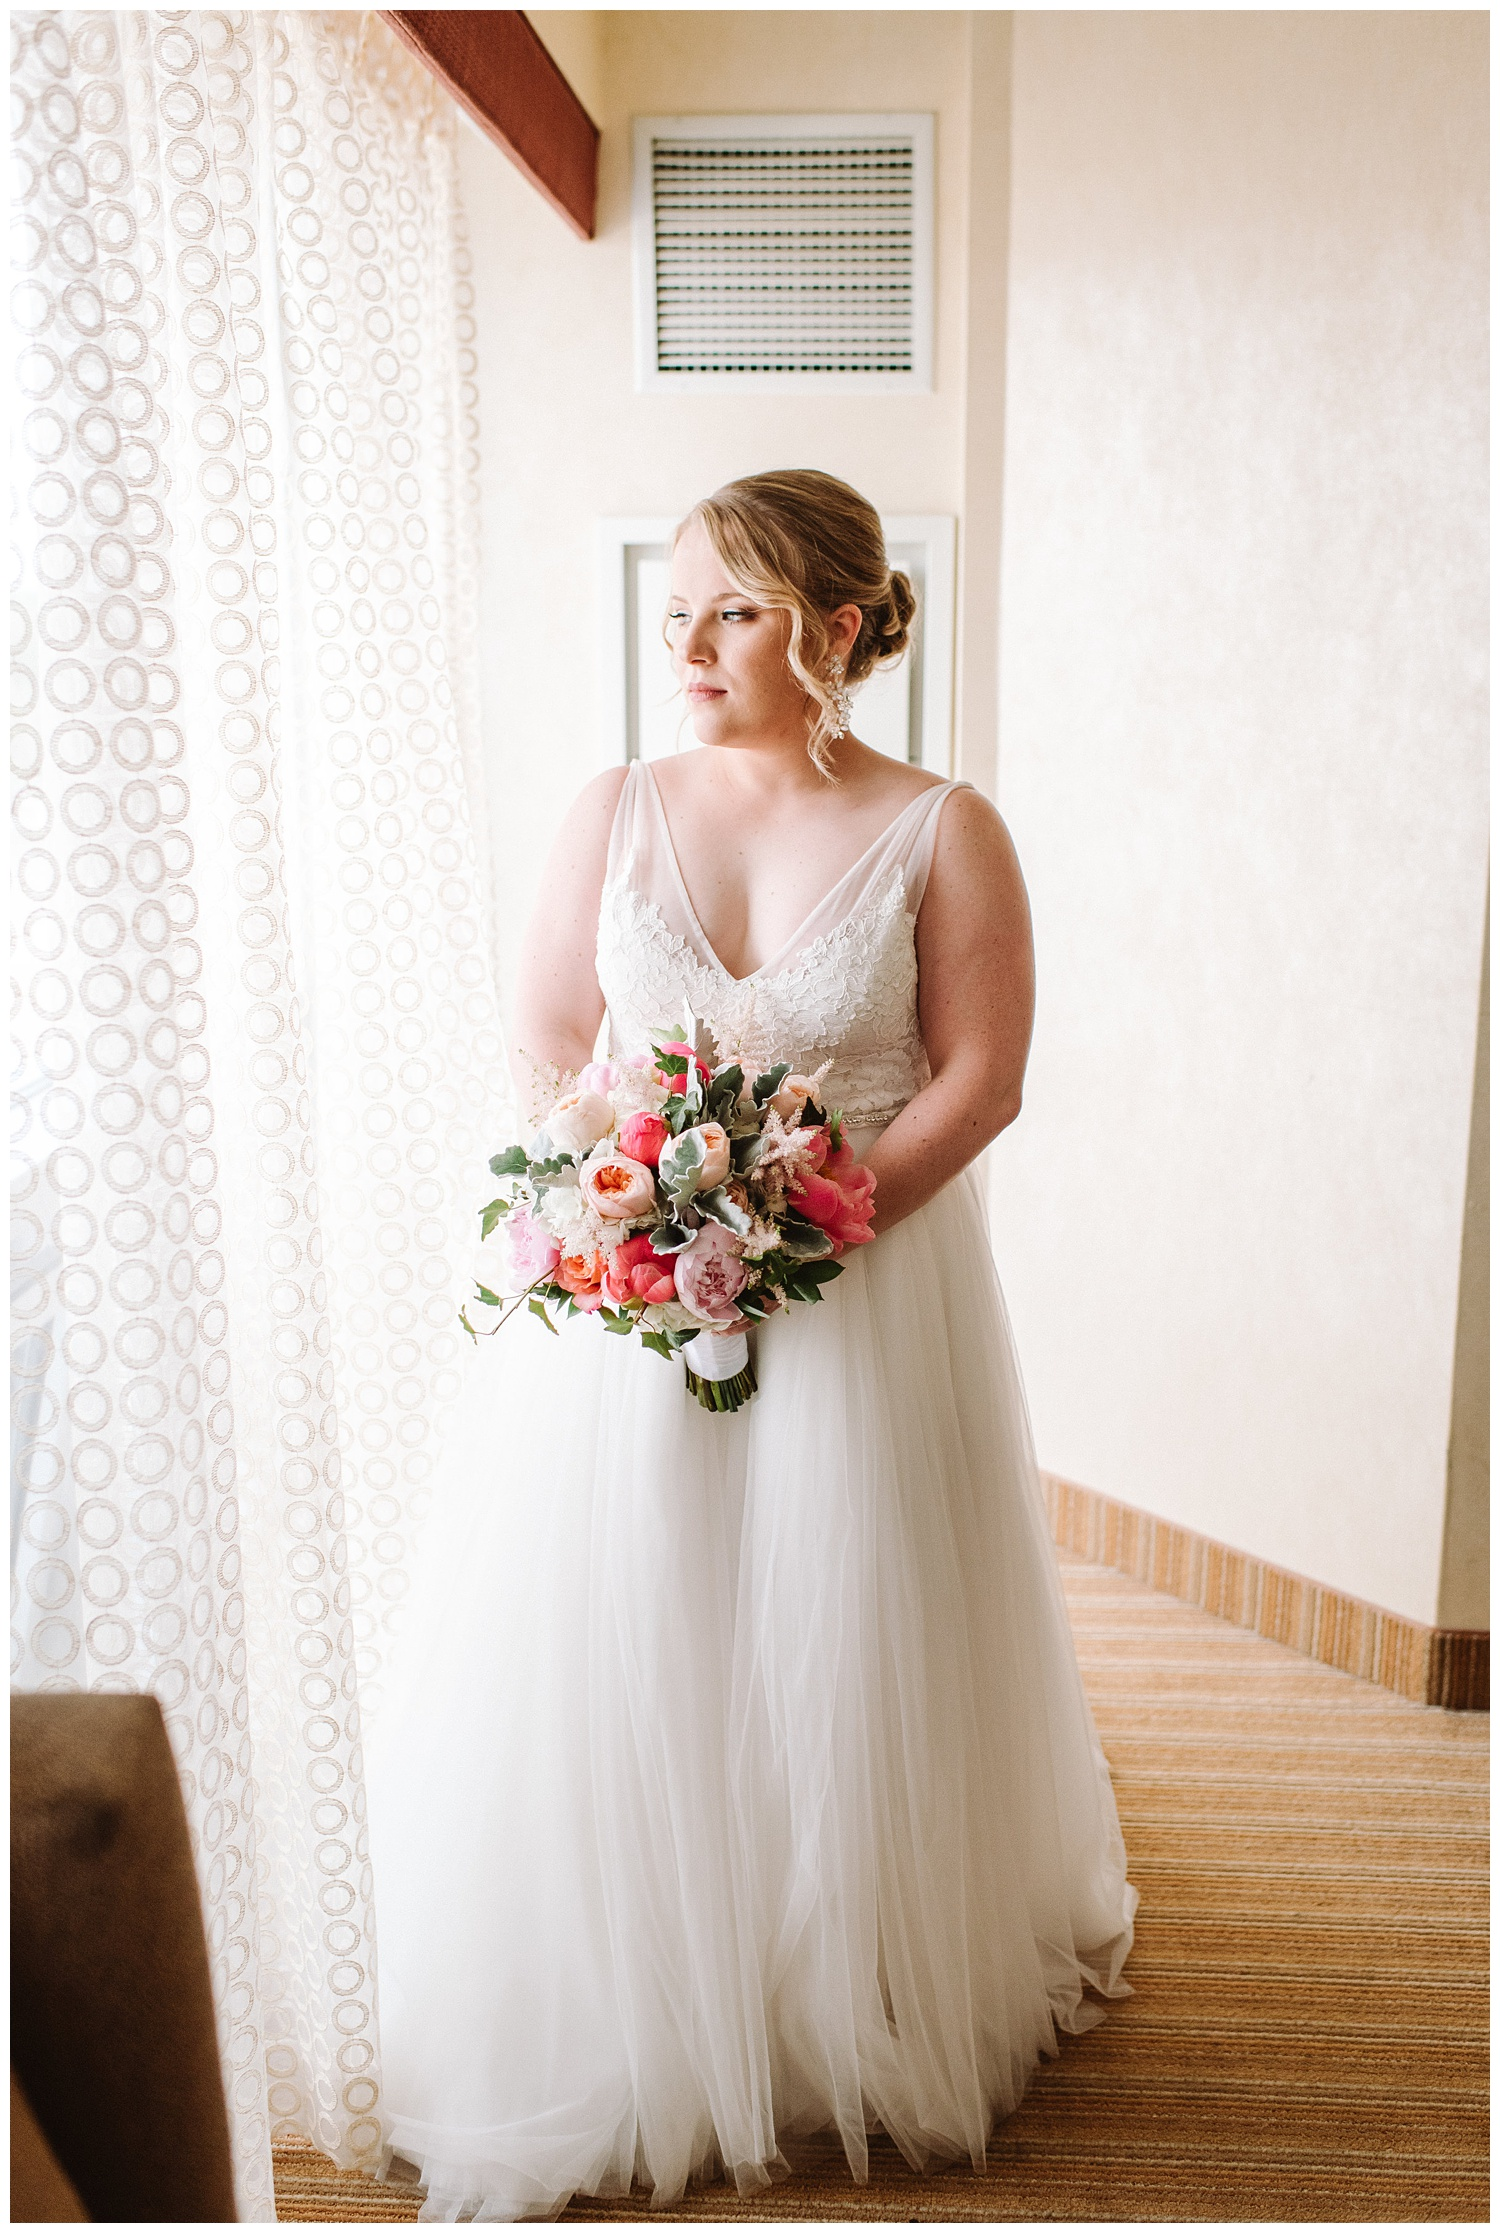 Renaissance Hotel Gillette Stadium Wedding Photographer16.jpg